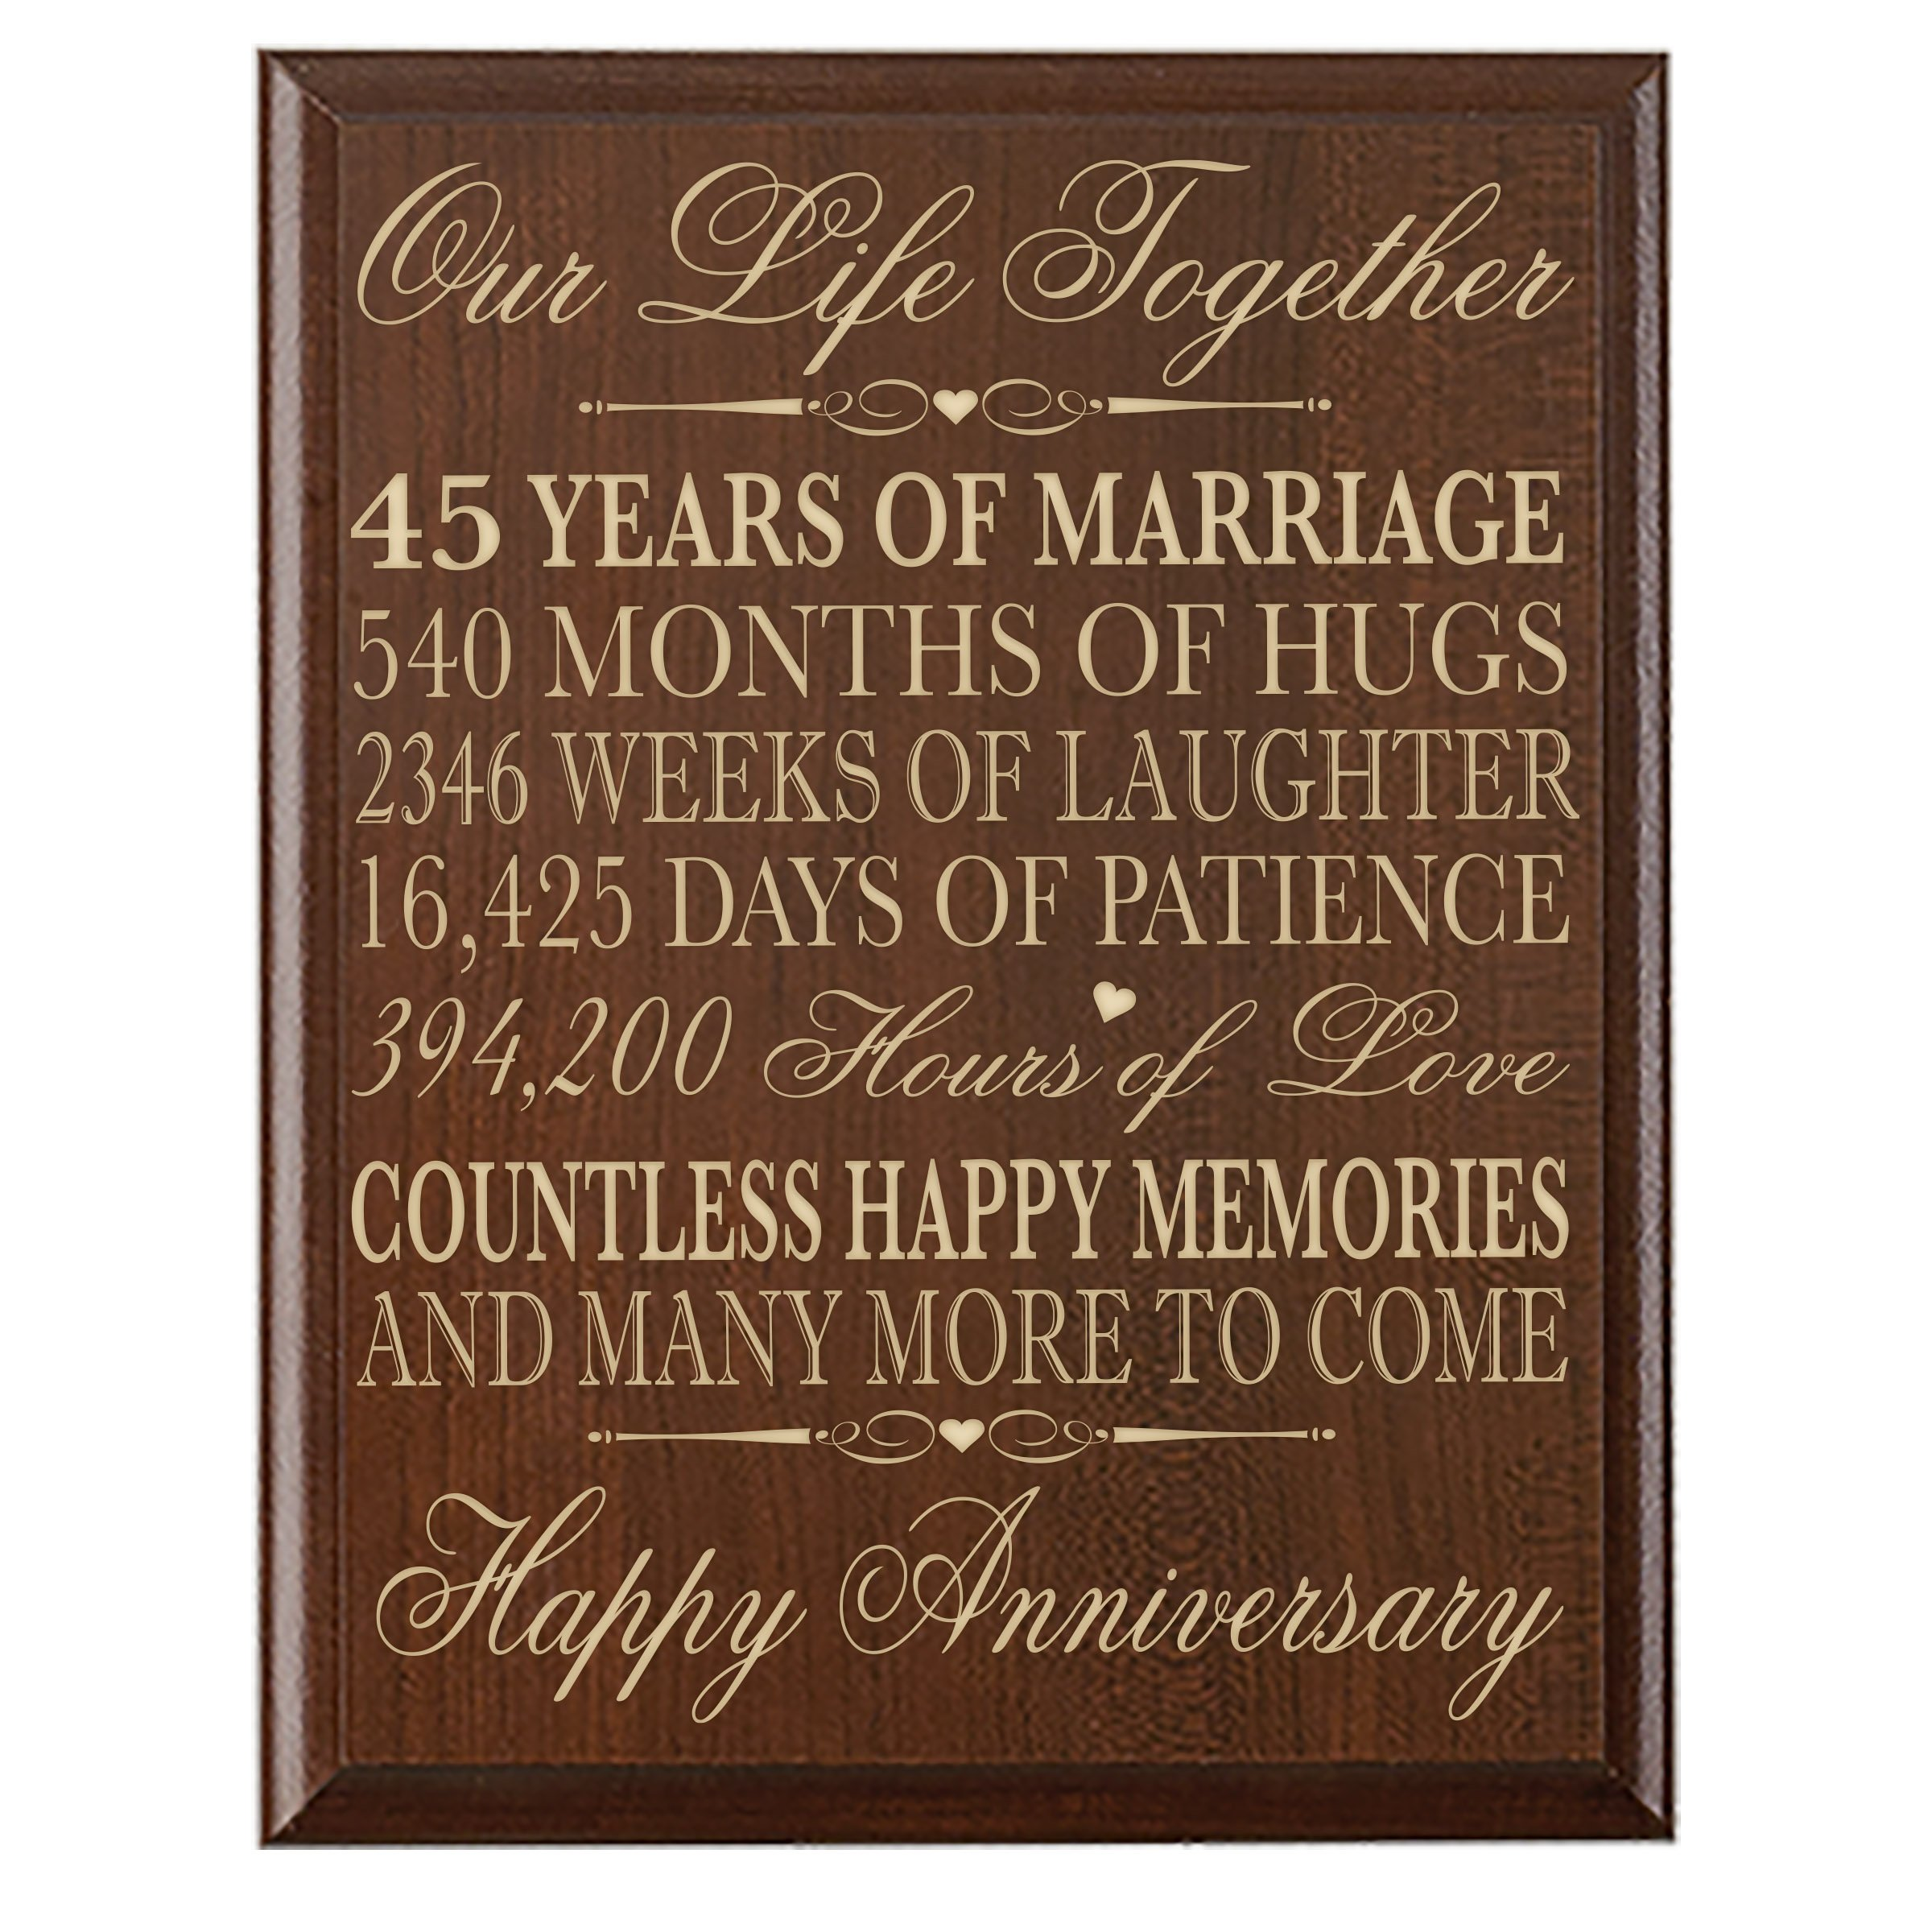 45th Wedding Anniversary Gift.Buy Parents 45th Wedding Anniversary Gifts Wall Plaque For Couple